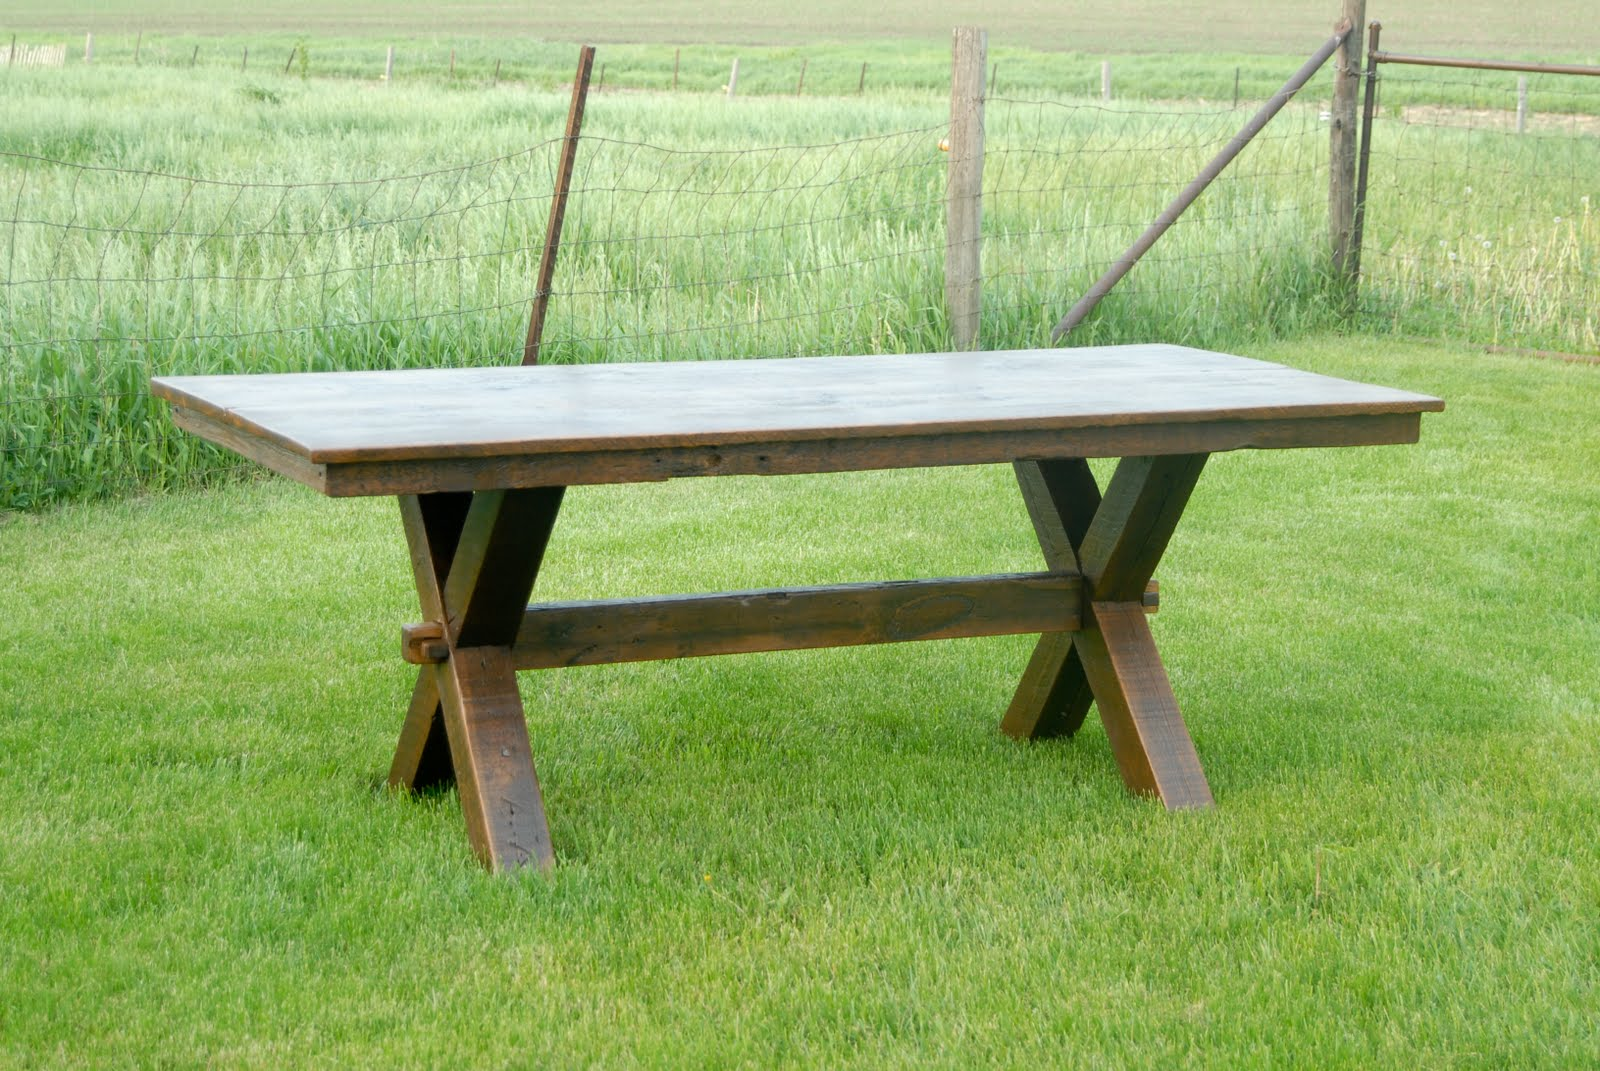 lg custom woodworking trestle picnic style dining table and bench. Black Bedroom Furniture Sets. Home Design Ideas